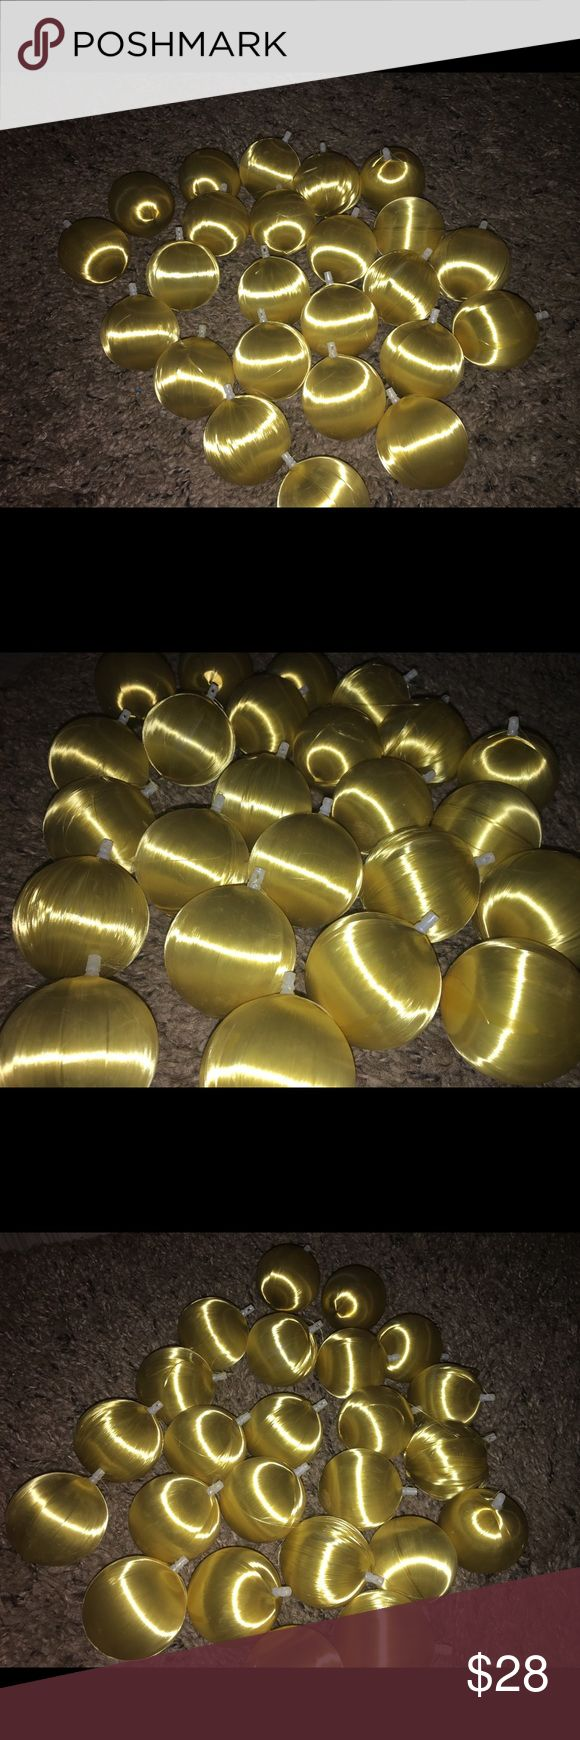 Set of 24 vintage gold yellow xmas ornaments Thank you for viewing my listing, for sale is General foam plastics Corp brand, set of 24, jumbo, yellow / gold Christmas ball ornaments. These are the vintage ones that are silk/satin balls. They come in the original box.  Overall they are in good condition, however there is some of them that are starting to come unraveled. I did my best to clean them up. Each ball measures approximately 8 inches in circumference general plastics corp Accessories